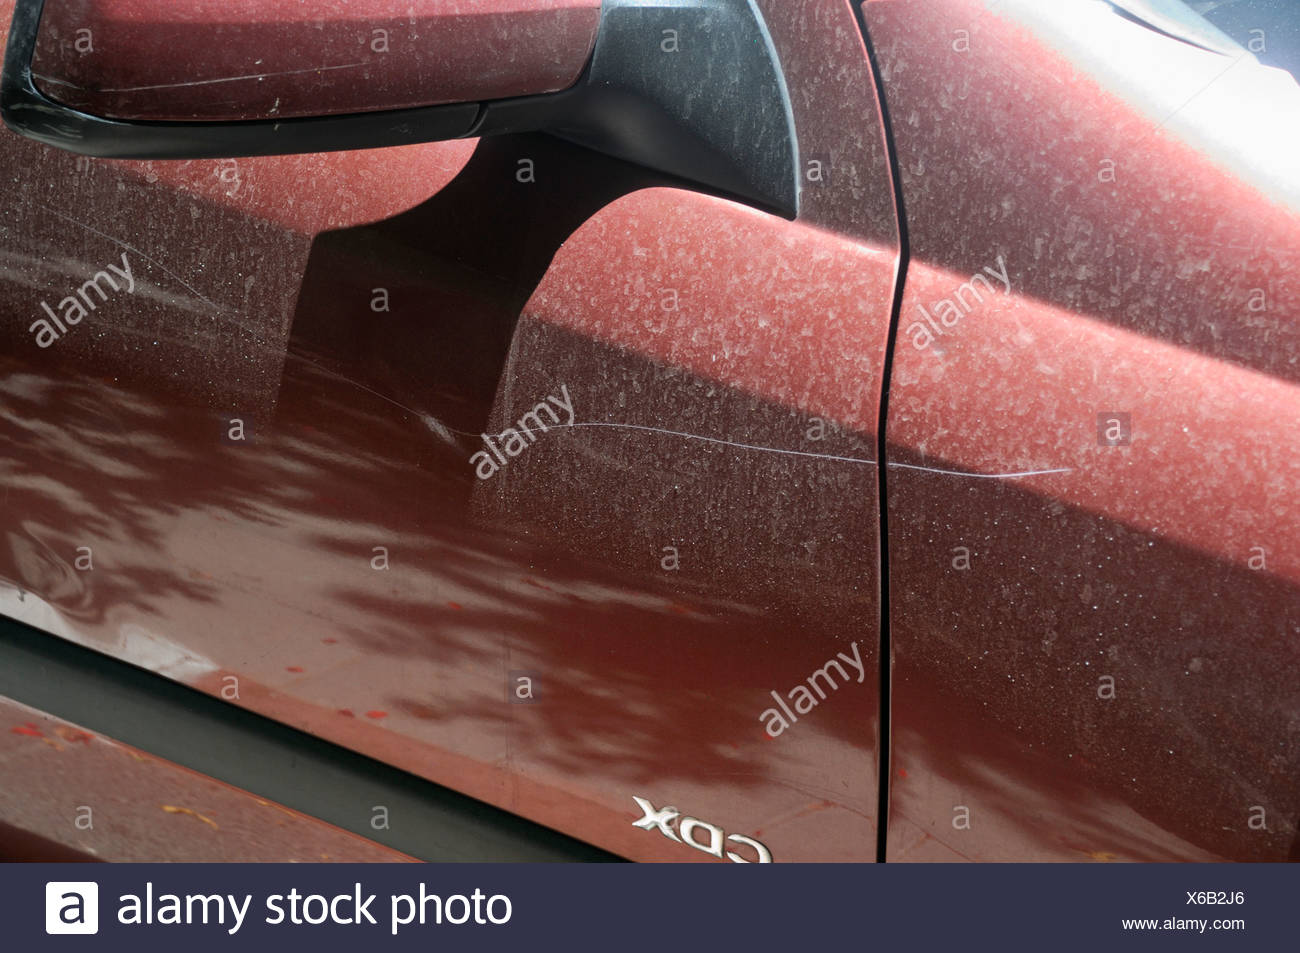 A vandalised car a long scratch along the side of the car - Stock Image